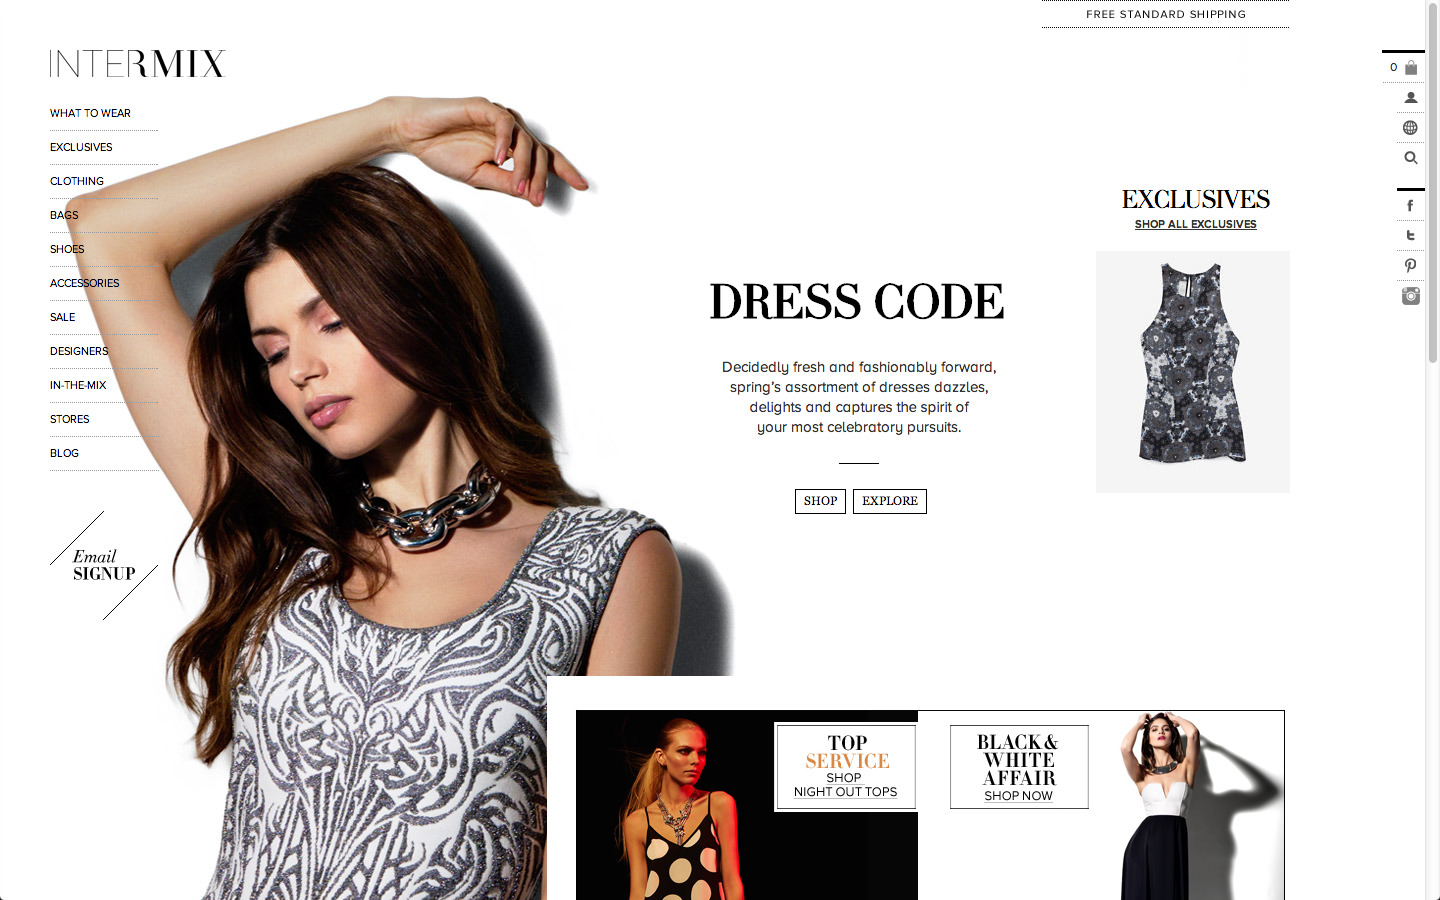 Looks - Launches intermix first ad campaign video